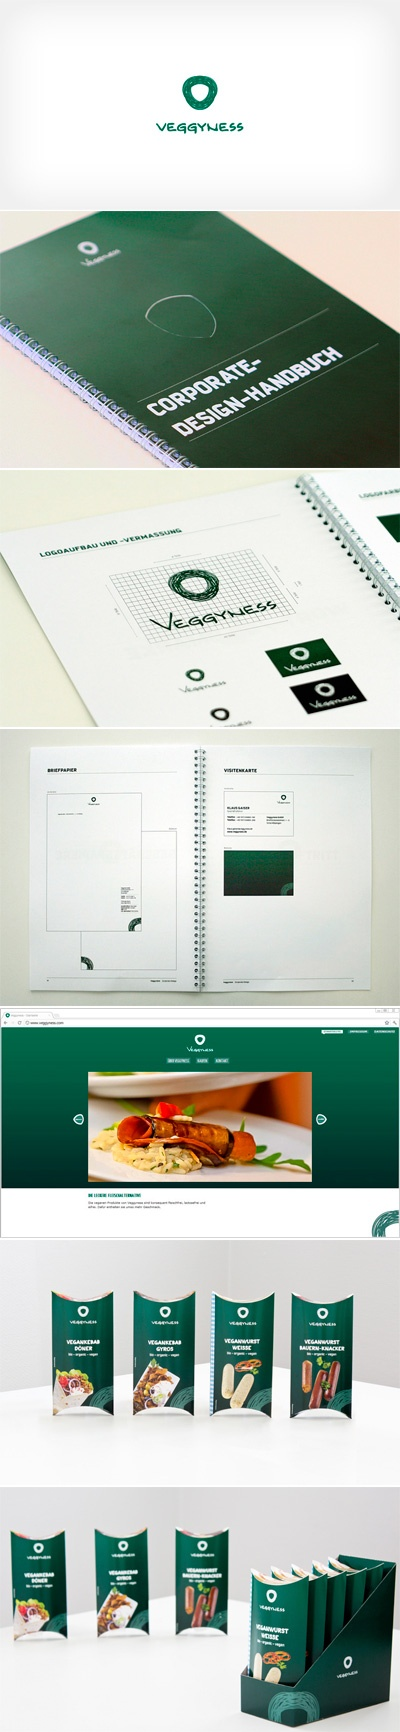 #branding | corporate design for veggyness, a brand for vegan food | logo, website, business card, letter paper, packaging | What do you think about it?